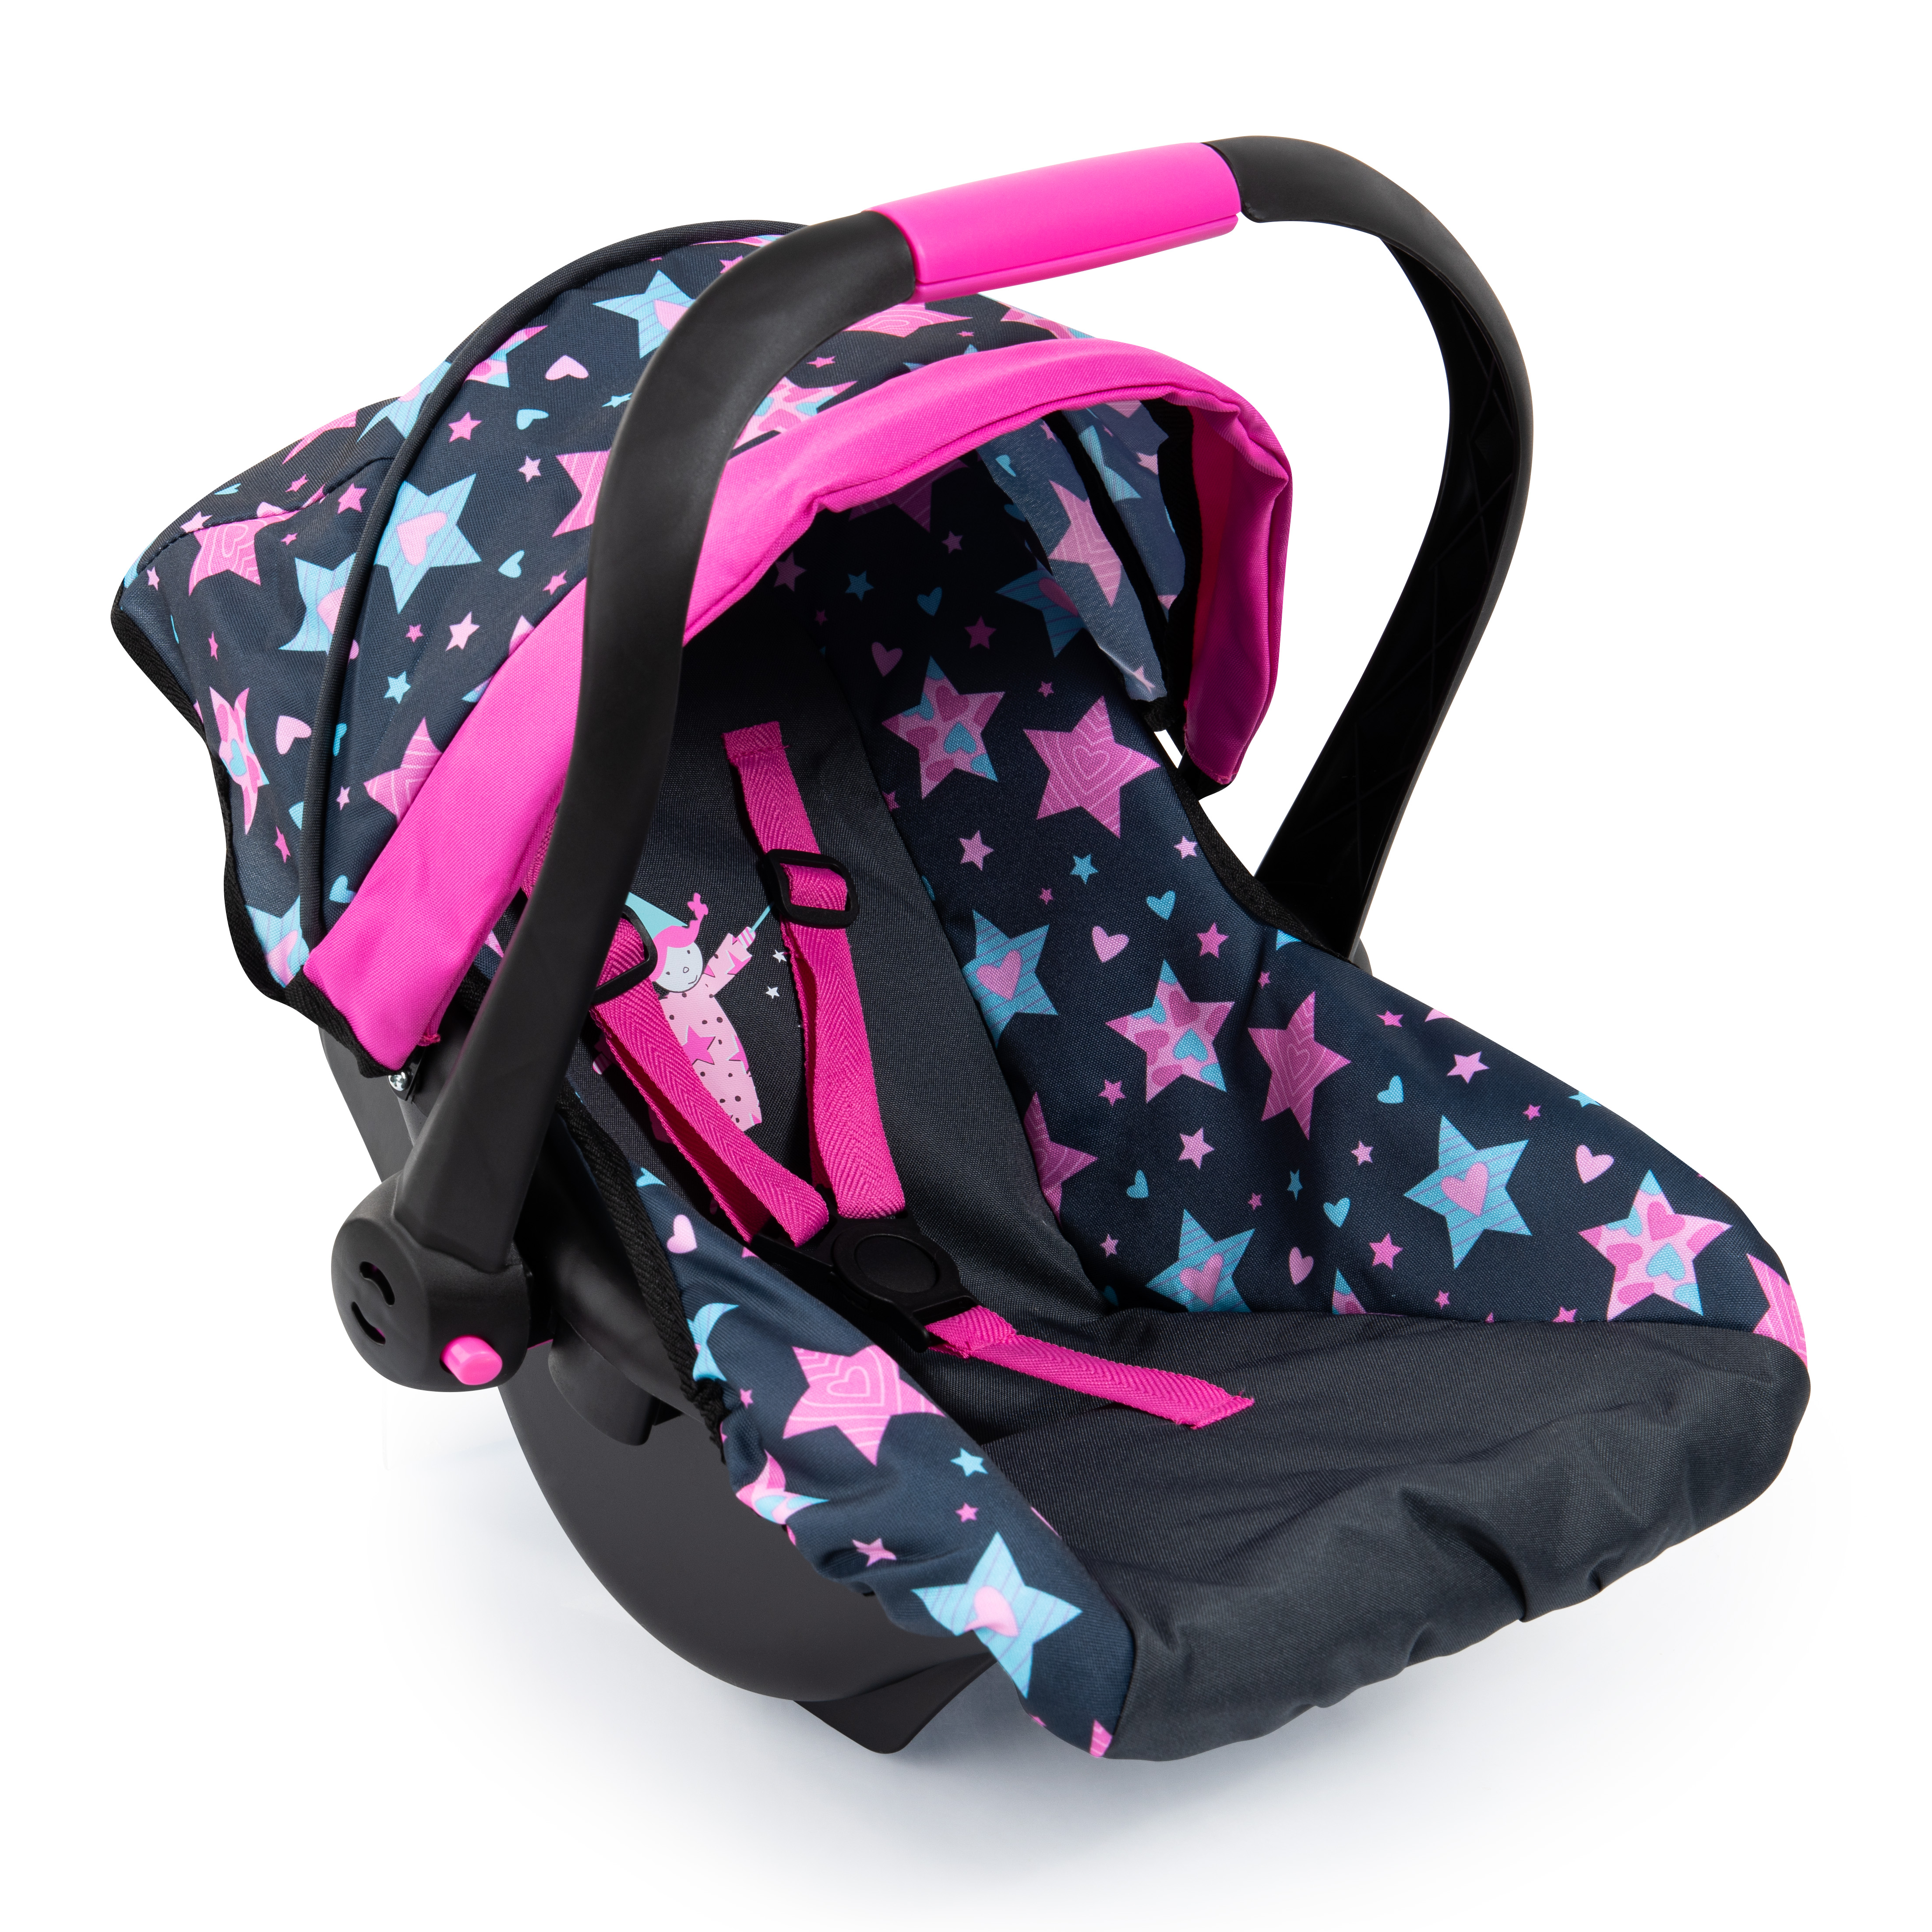 Bayer - Deluxe Car Seat for Dolls - Stars (67906AA)